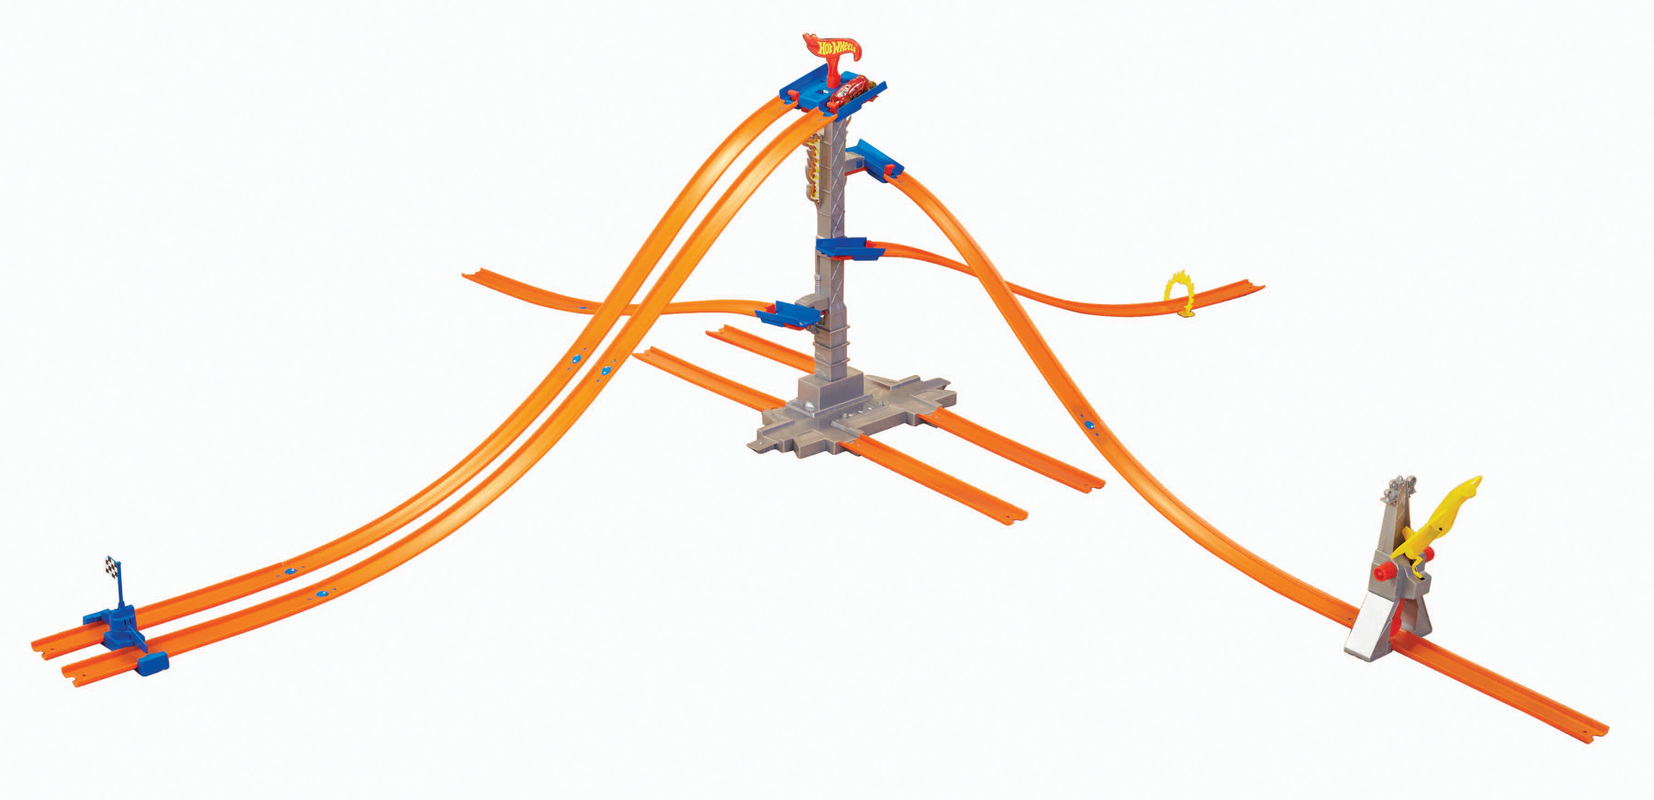 Hot Wheels Track Builder 5 Lane Tower Starter Set Shop Speed Wire Race Car Wiring Cars Trucks Tracks